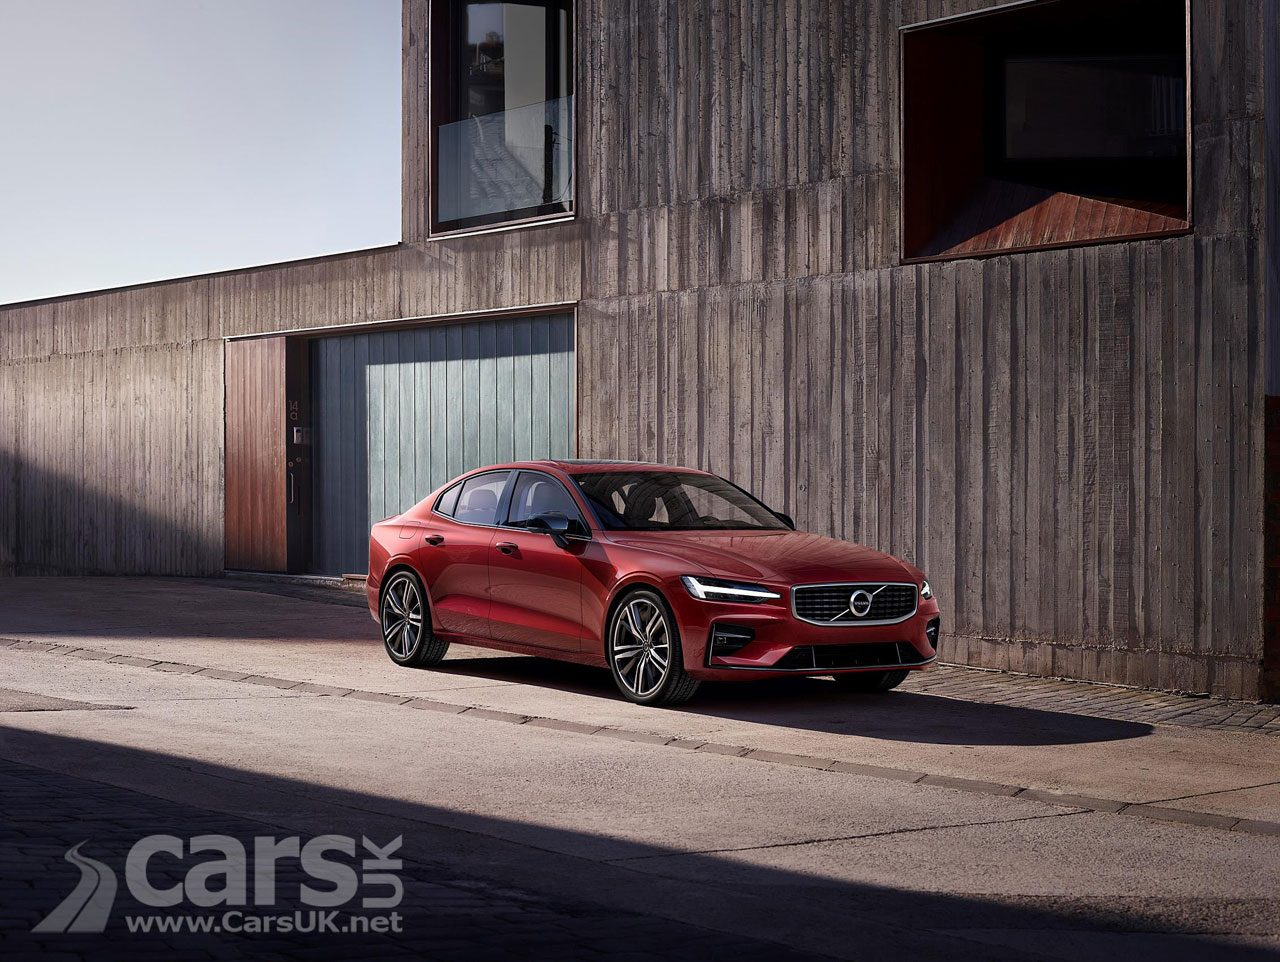 Check out the new Volvo S60 in a TRIO of videos